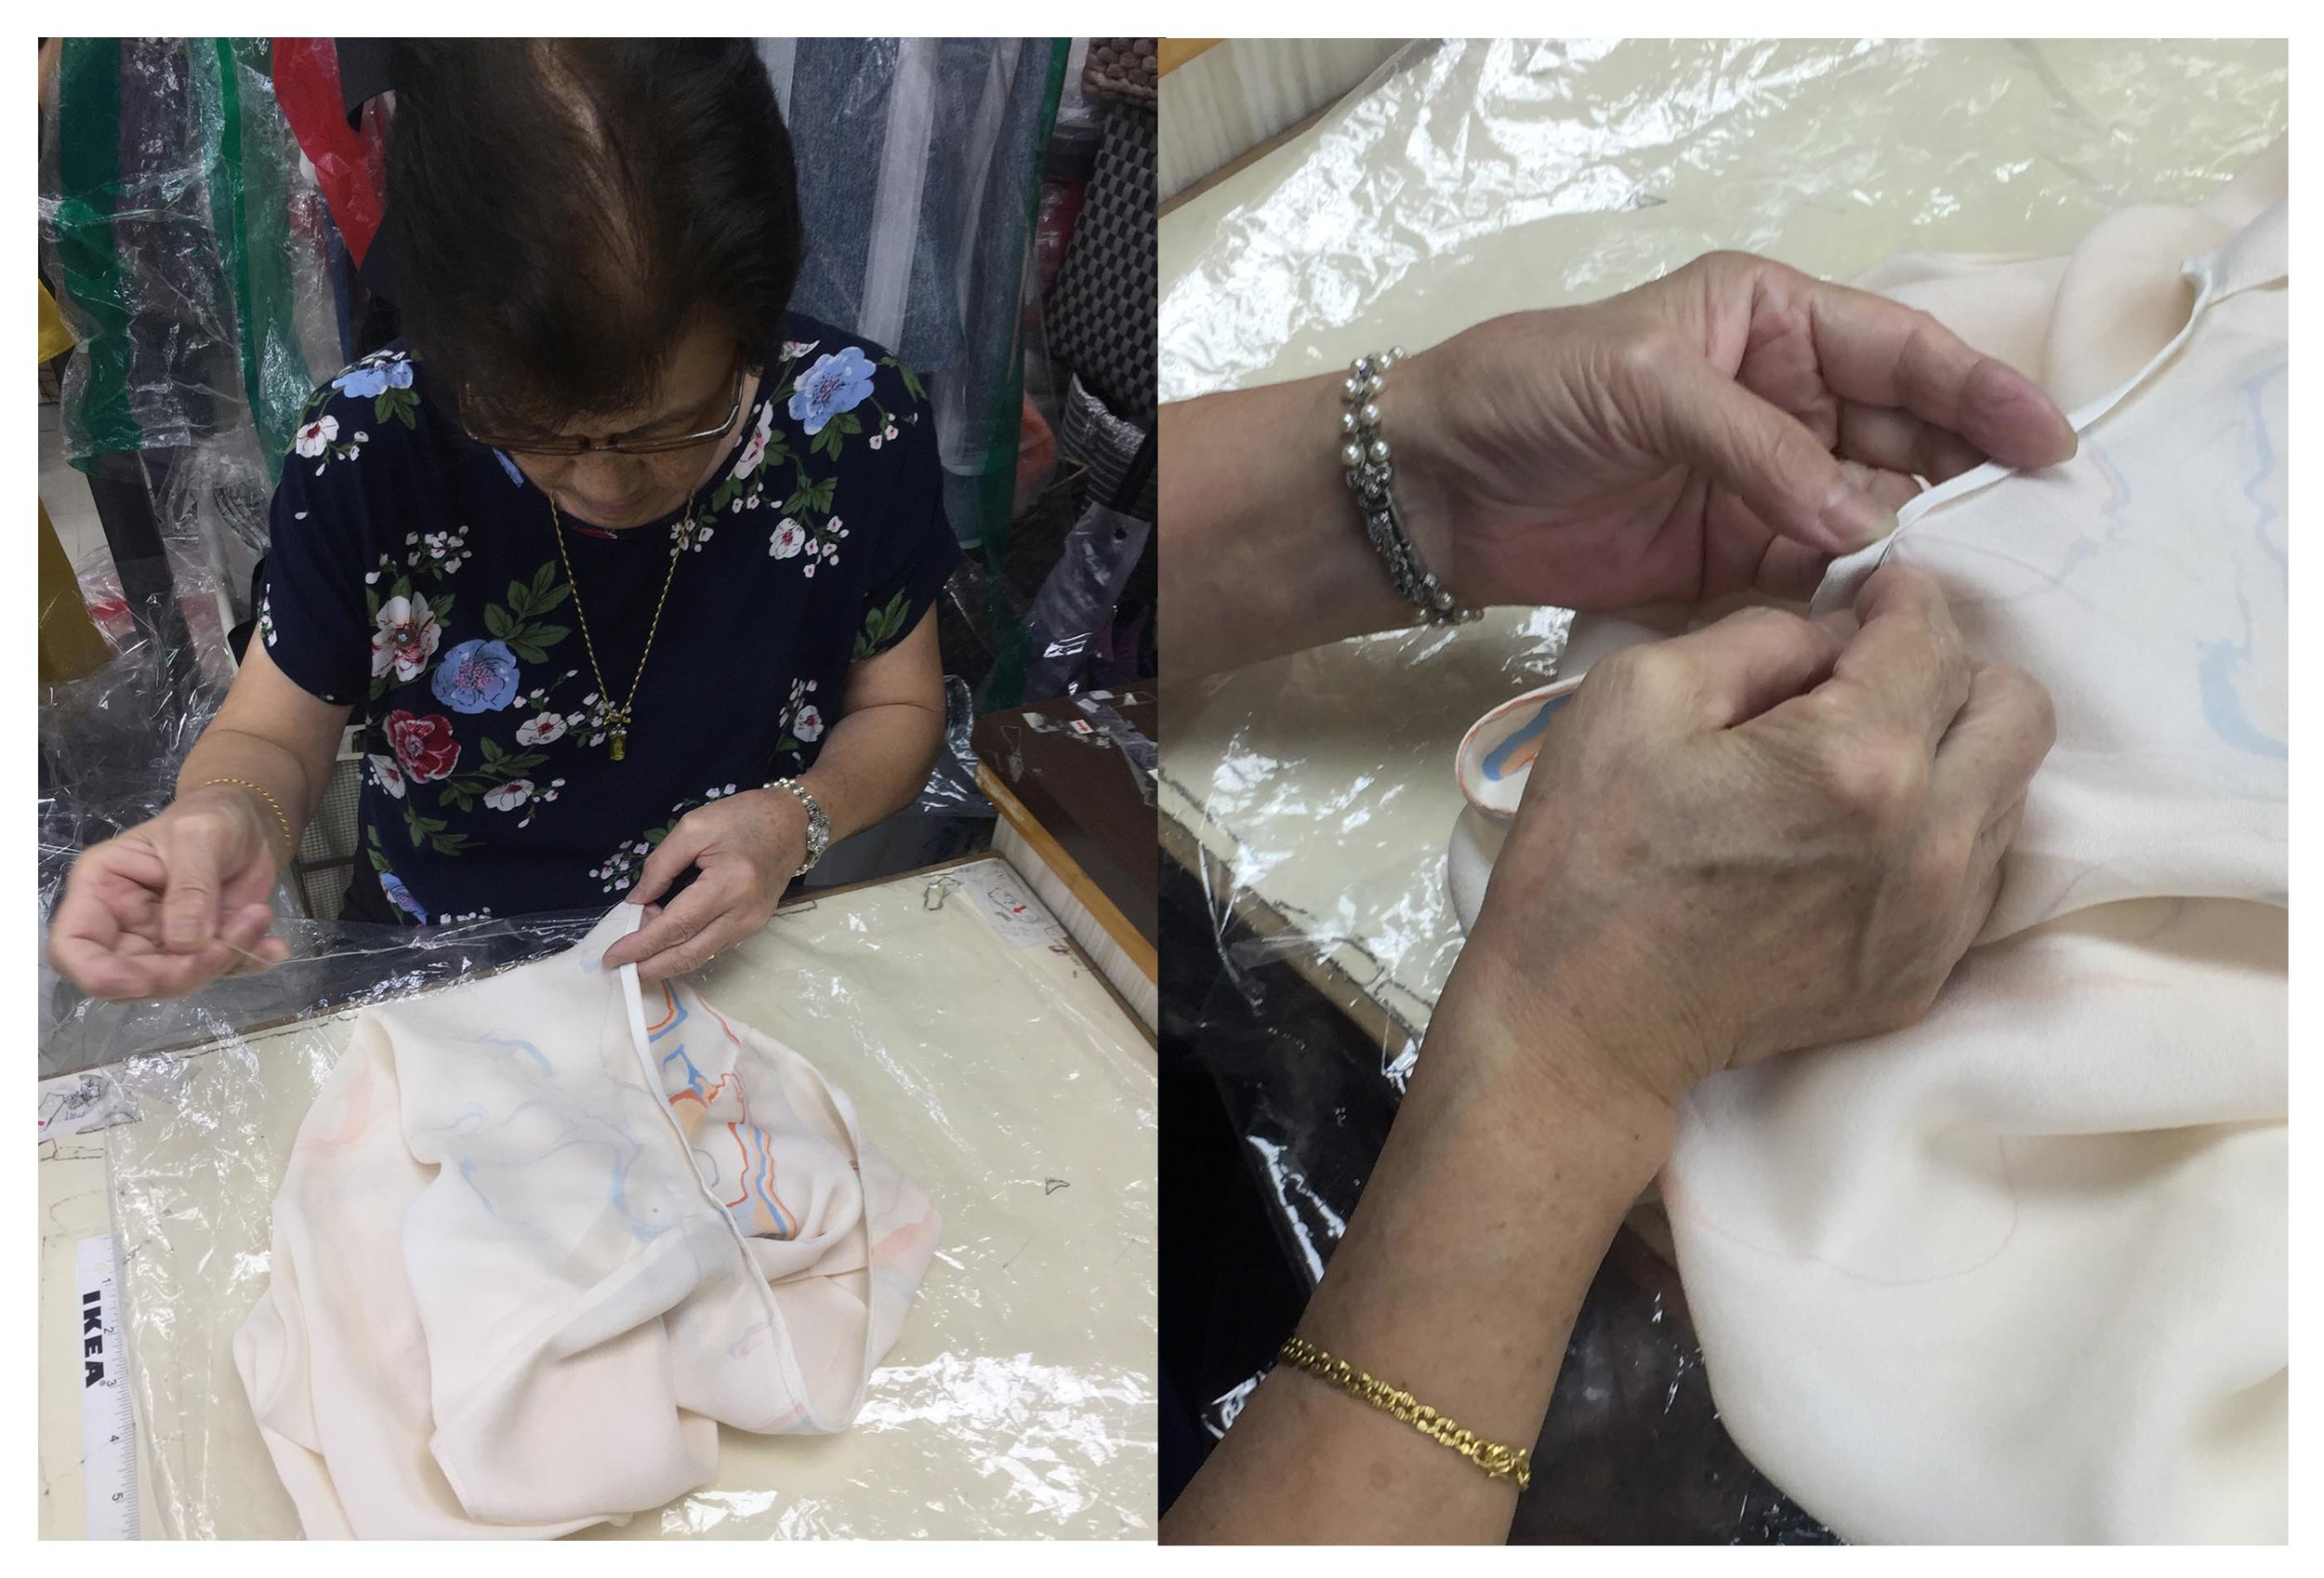 Madam Lan who has almost 70 years of sewing experience hemming the neckline binding of INMA top by hand.